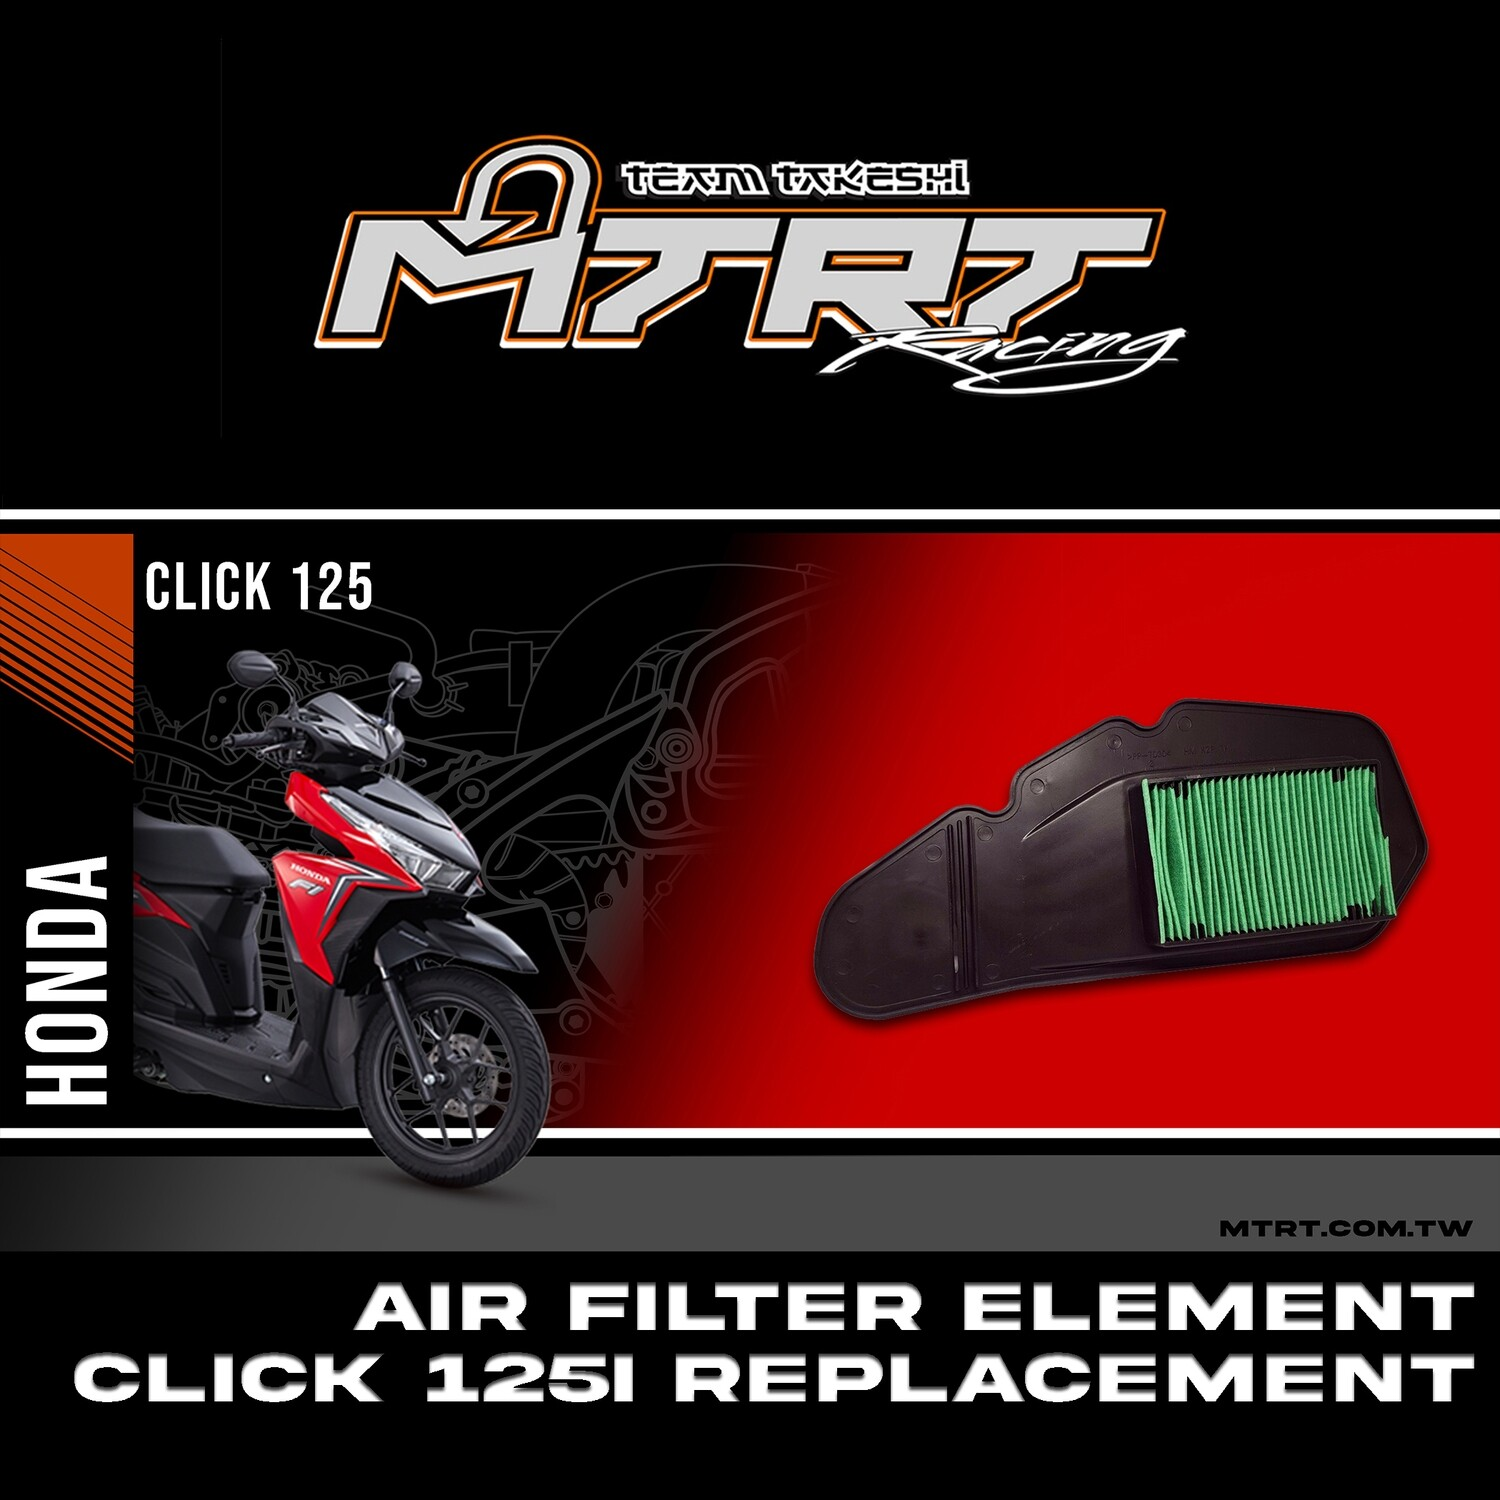 AIR FILTER ELEMENT CLICK125i Replacement